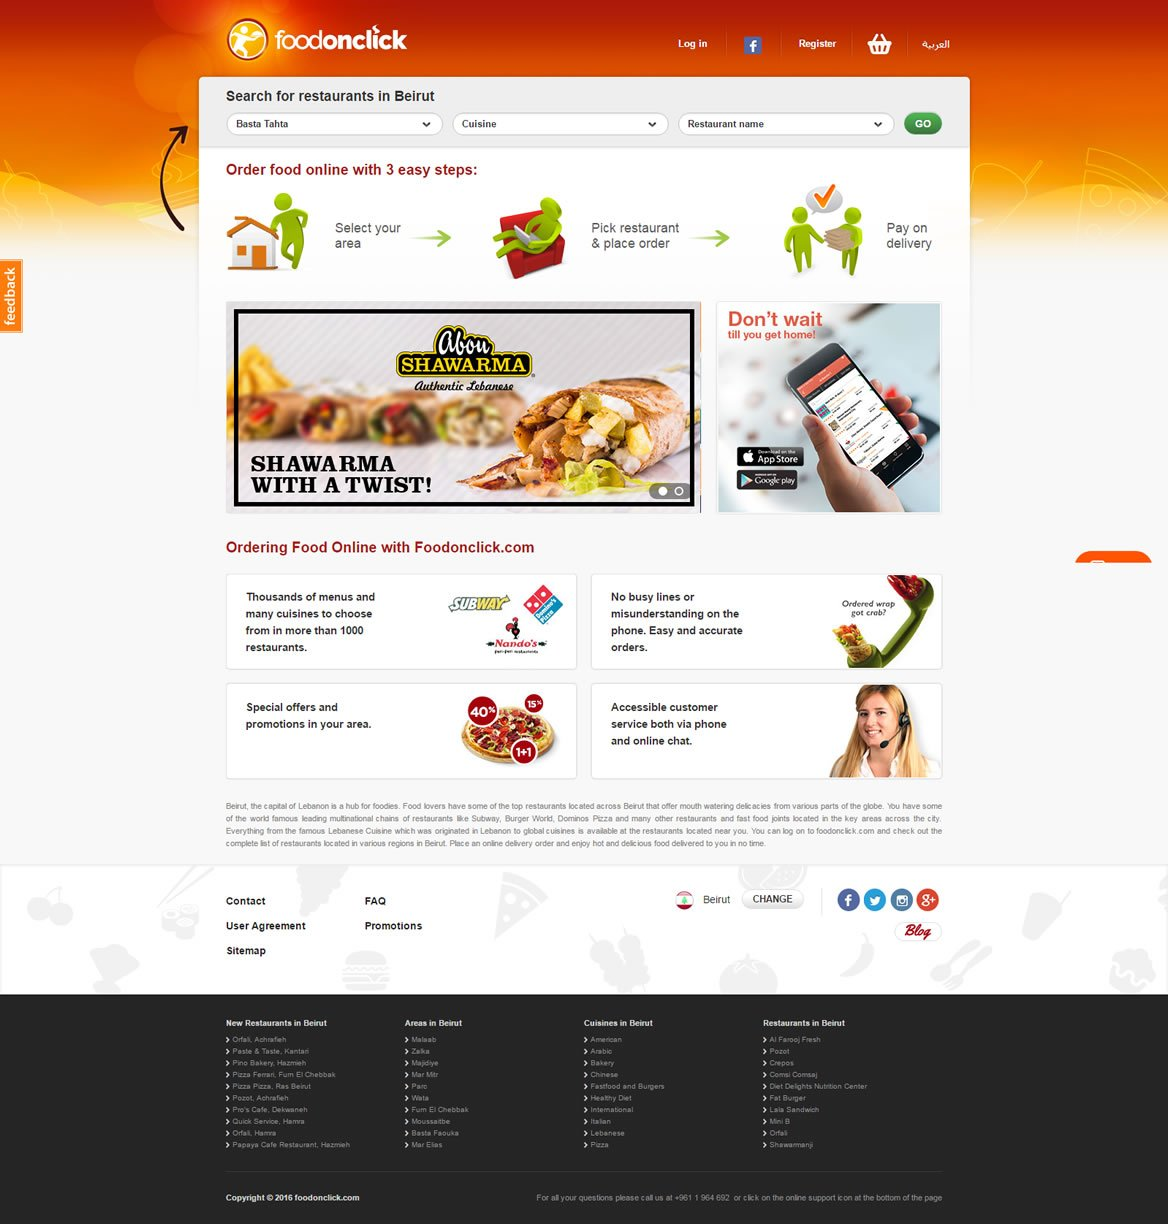 Market Place for Different Restaurants offers their Food Menu for